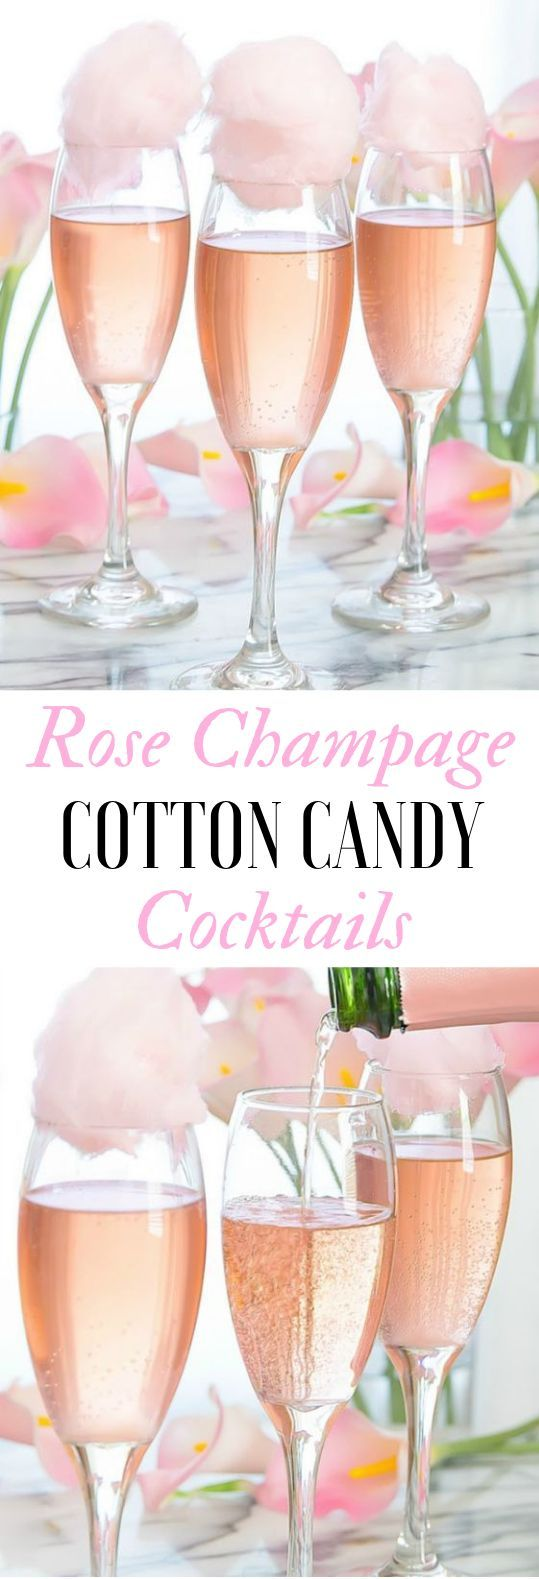 COTTON CANDY CHAMPAGNE COCKTAILS #Cocktail #Drinks